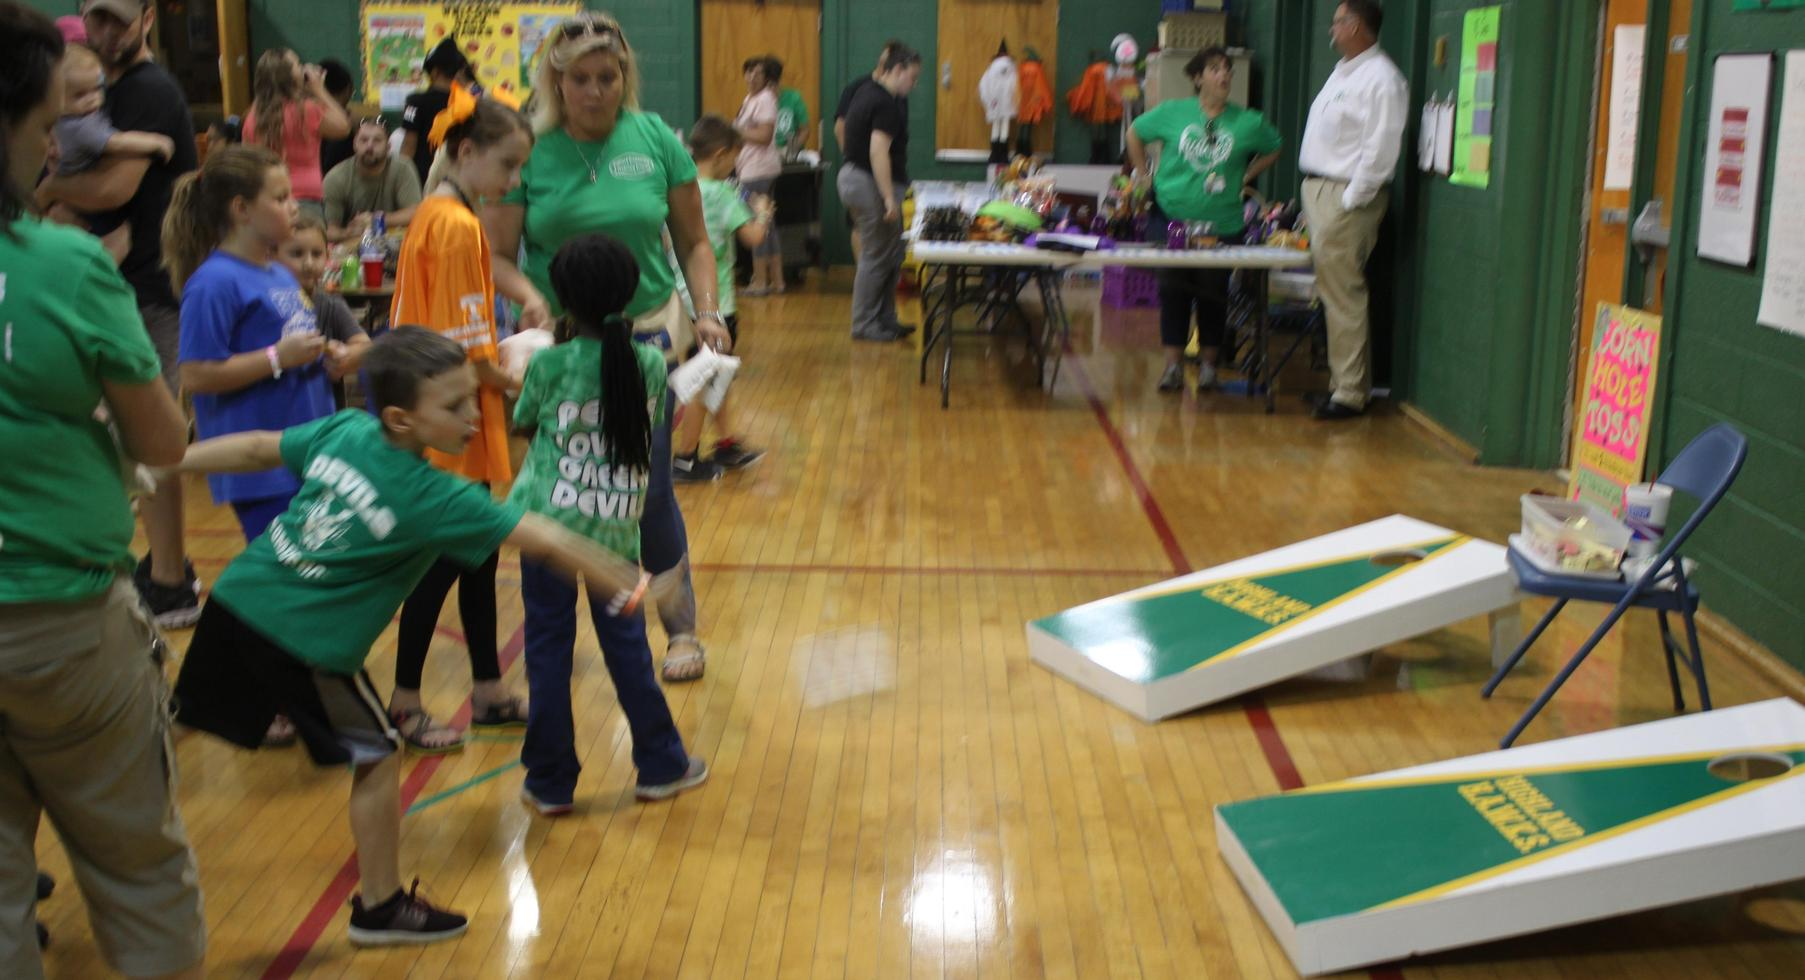 FunFestival for Education: Playing corn hole.